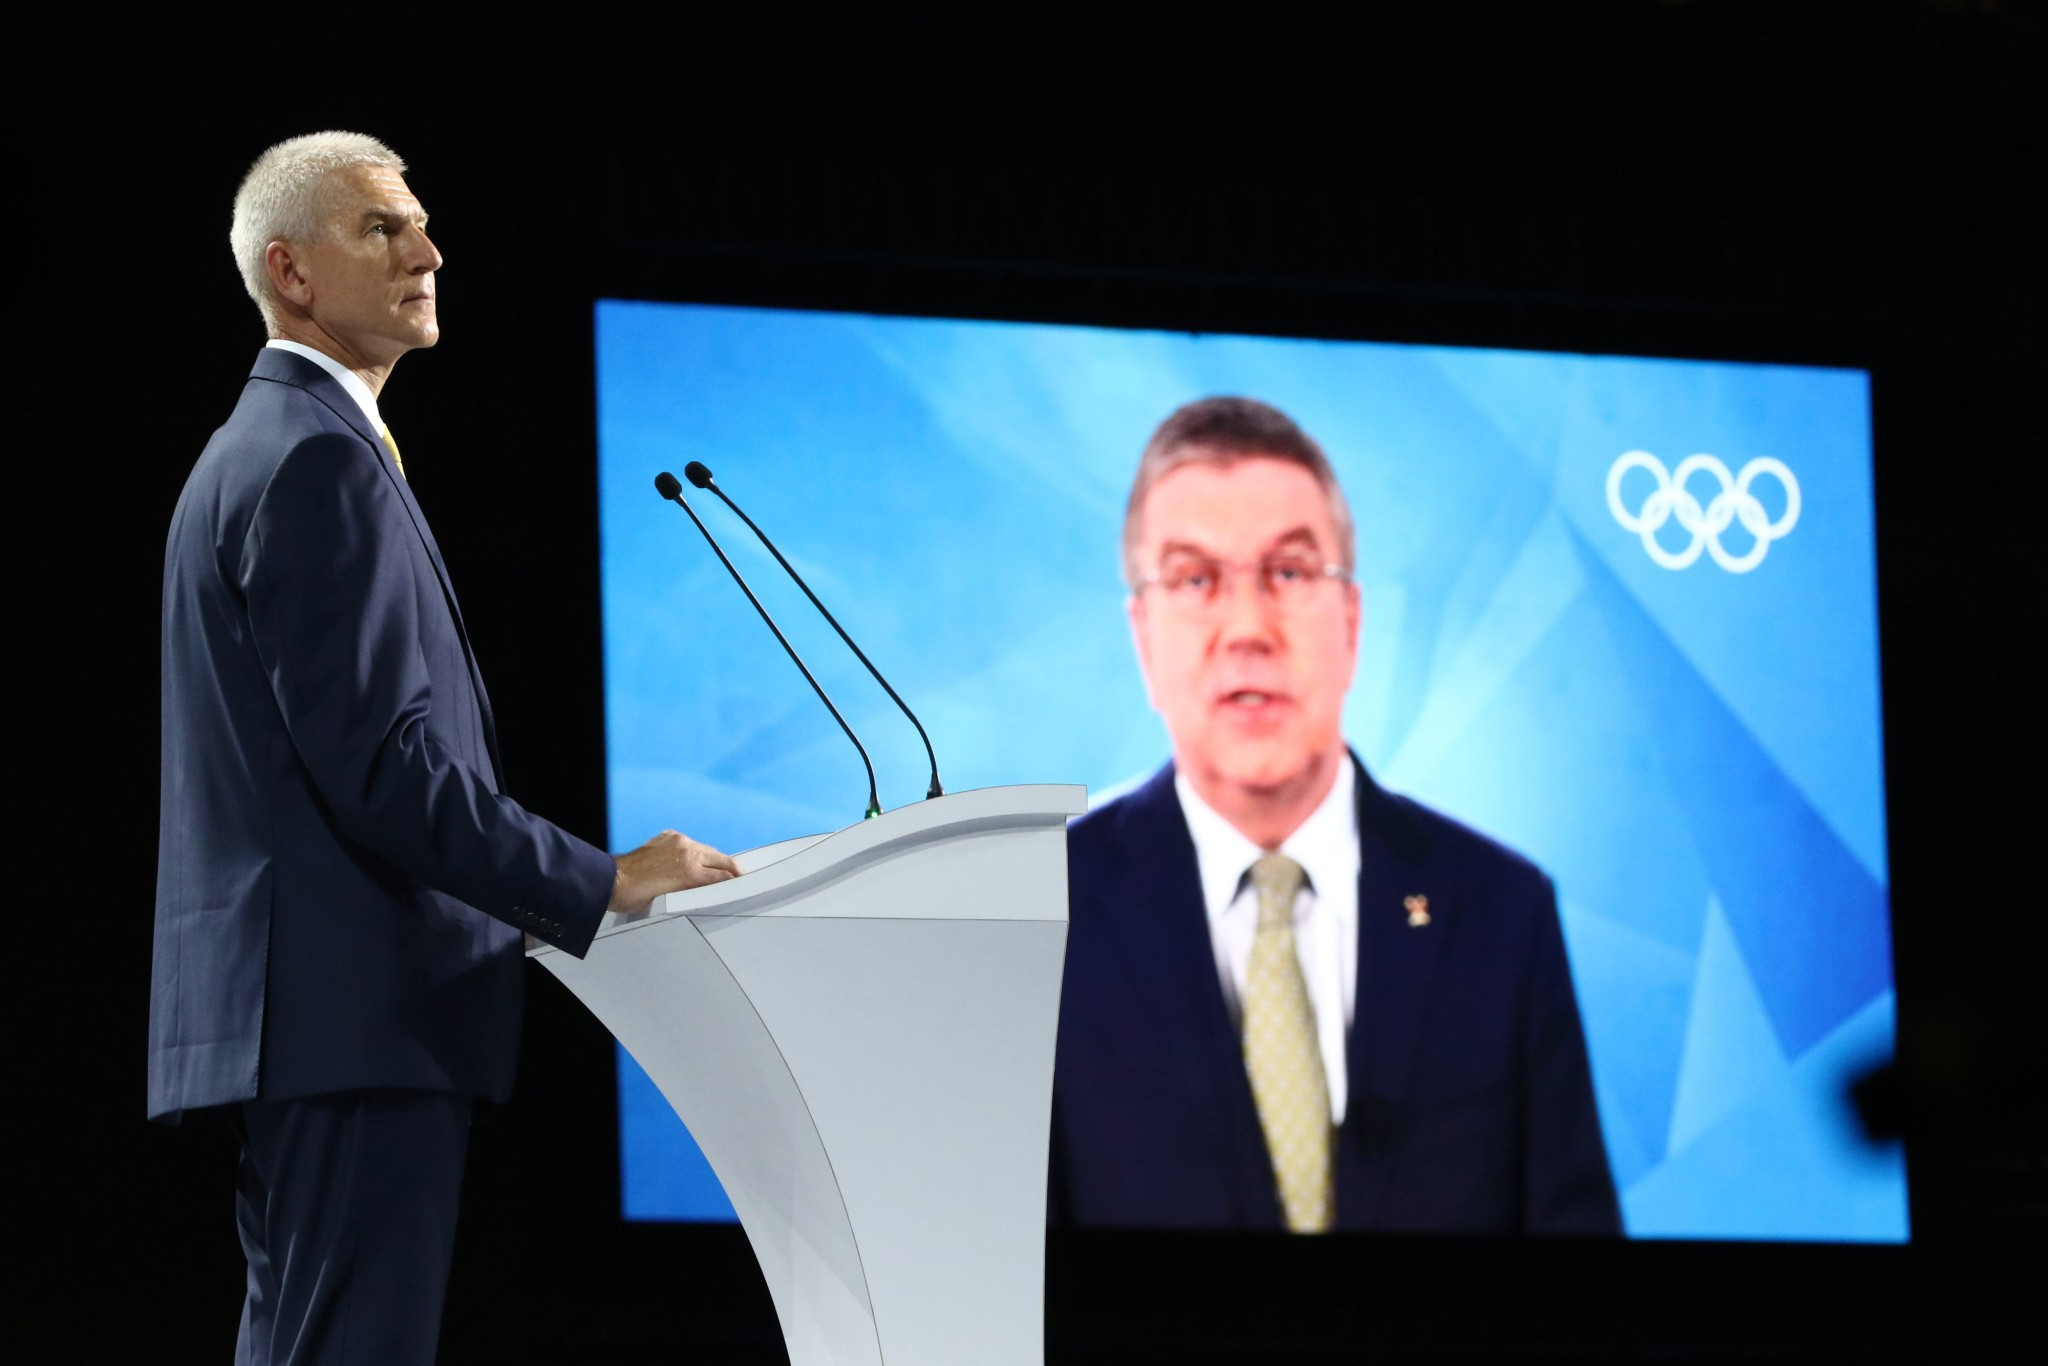 FISU President Oleg Matytsin, left, and IOC President Thomas Bach, right, both delivered speeches ©Taipei 2017